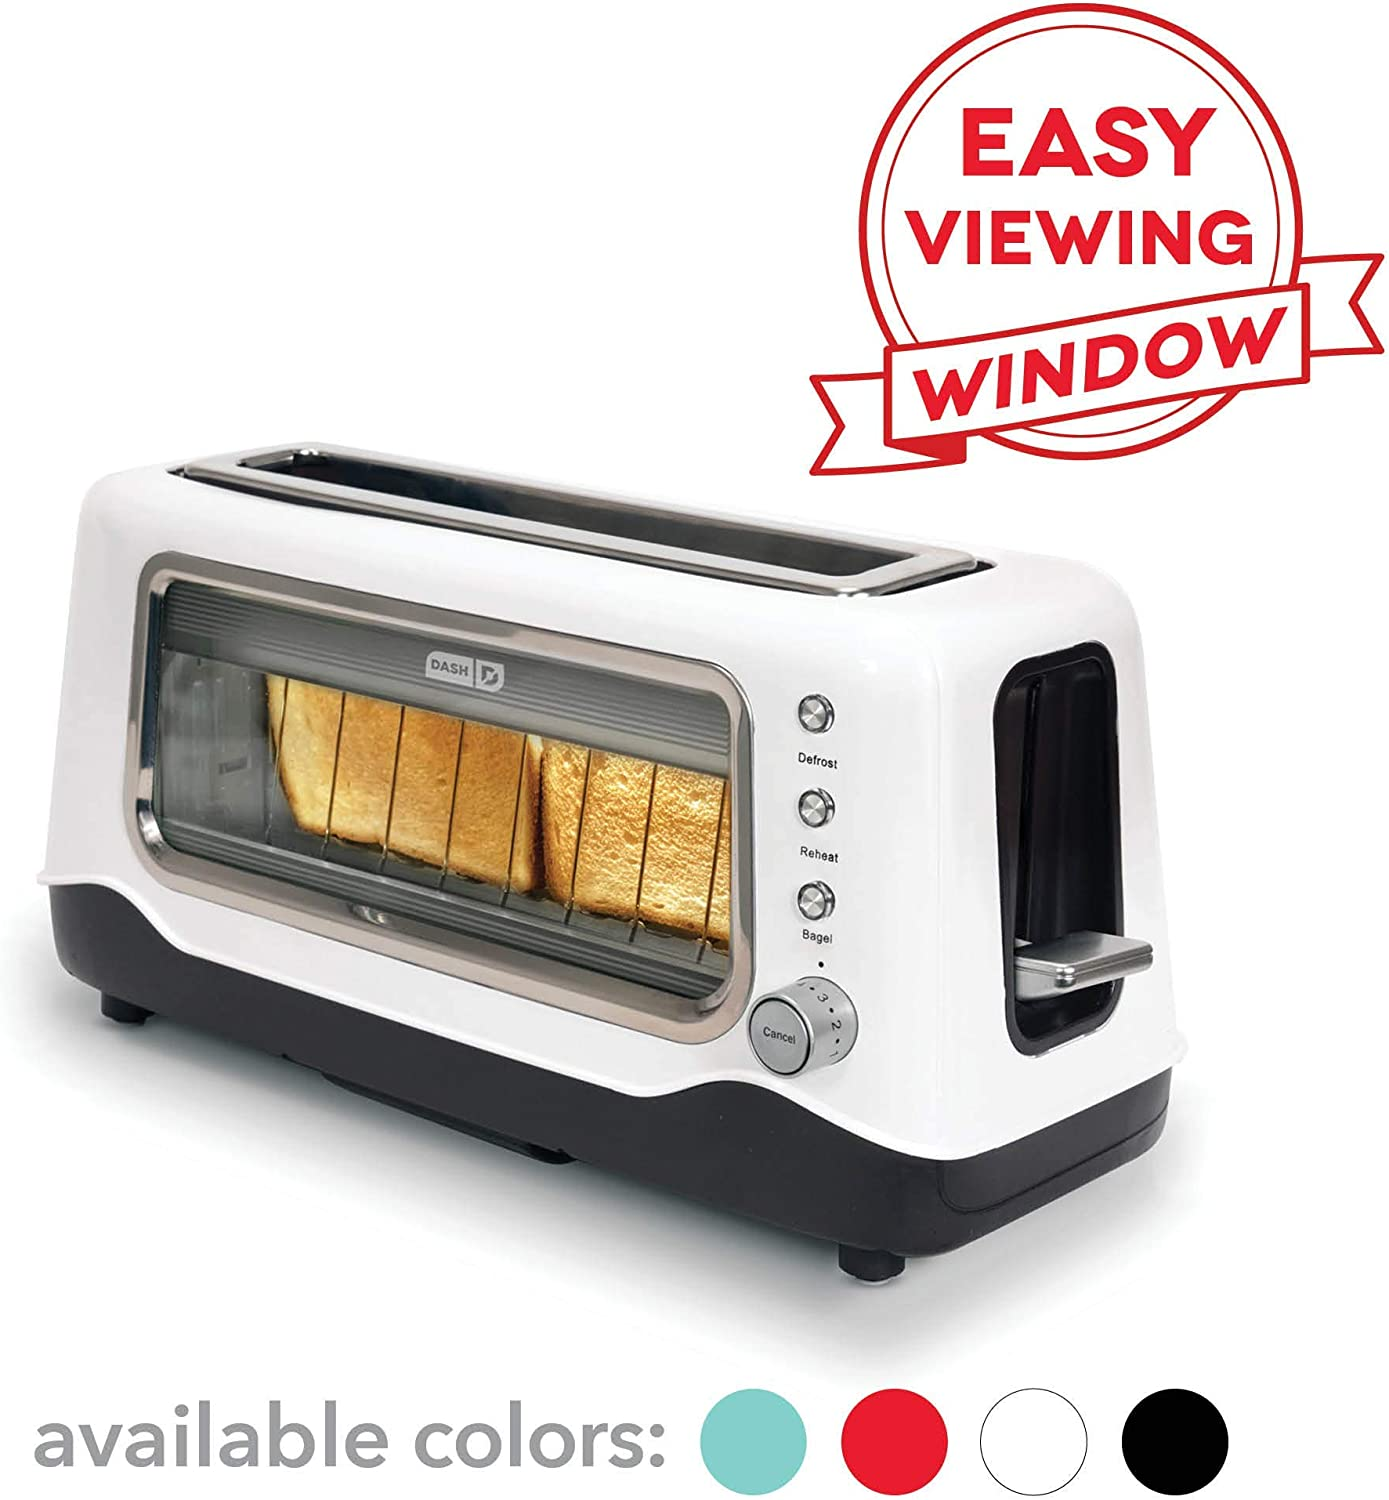 Dash DVTS501WH Clear View, Extra Wide Slot Toaster with Stainless Steel Accents , See Through Window, Defrost, Reheat , Auto Shut Off Feature For Bagels, Specialty Breads, and more/ White (Renewed)